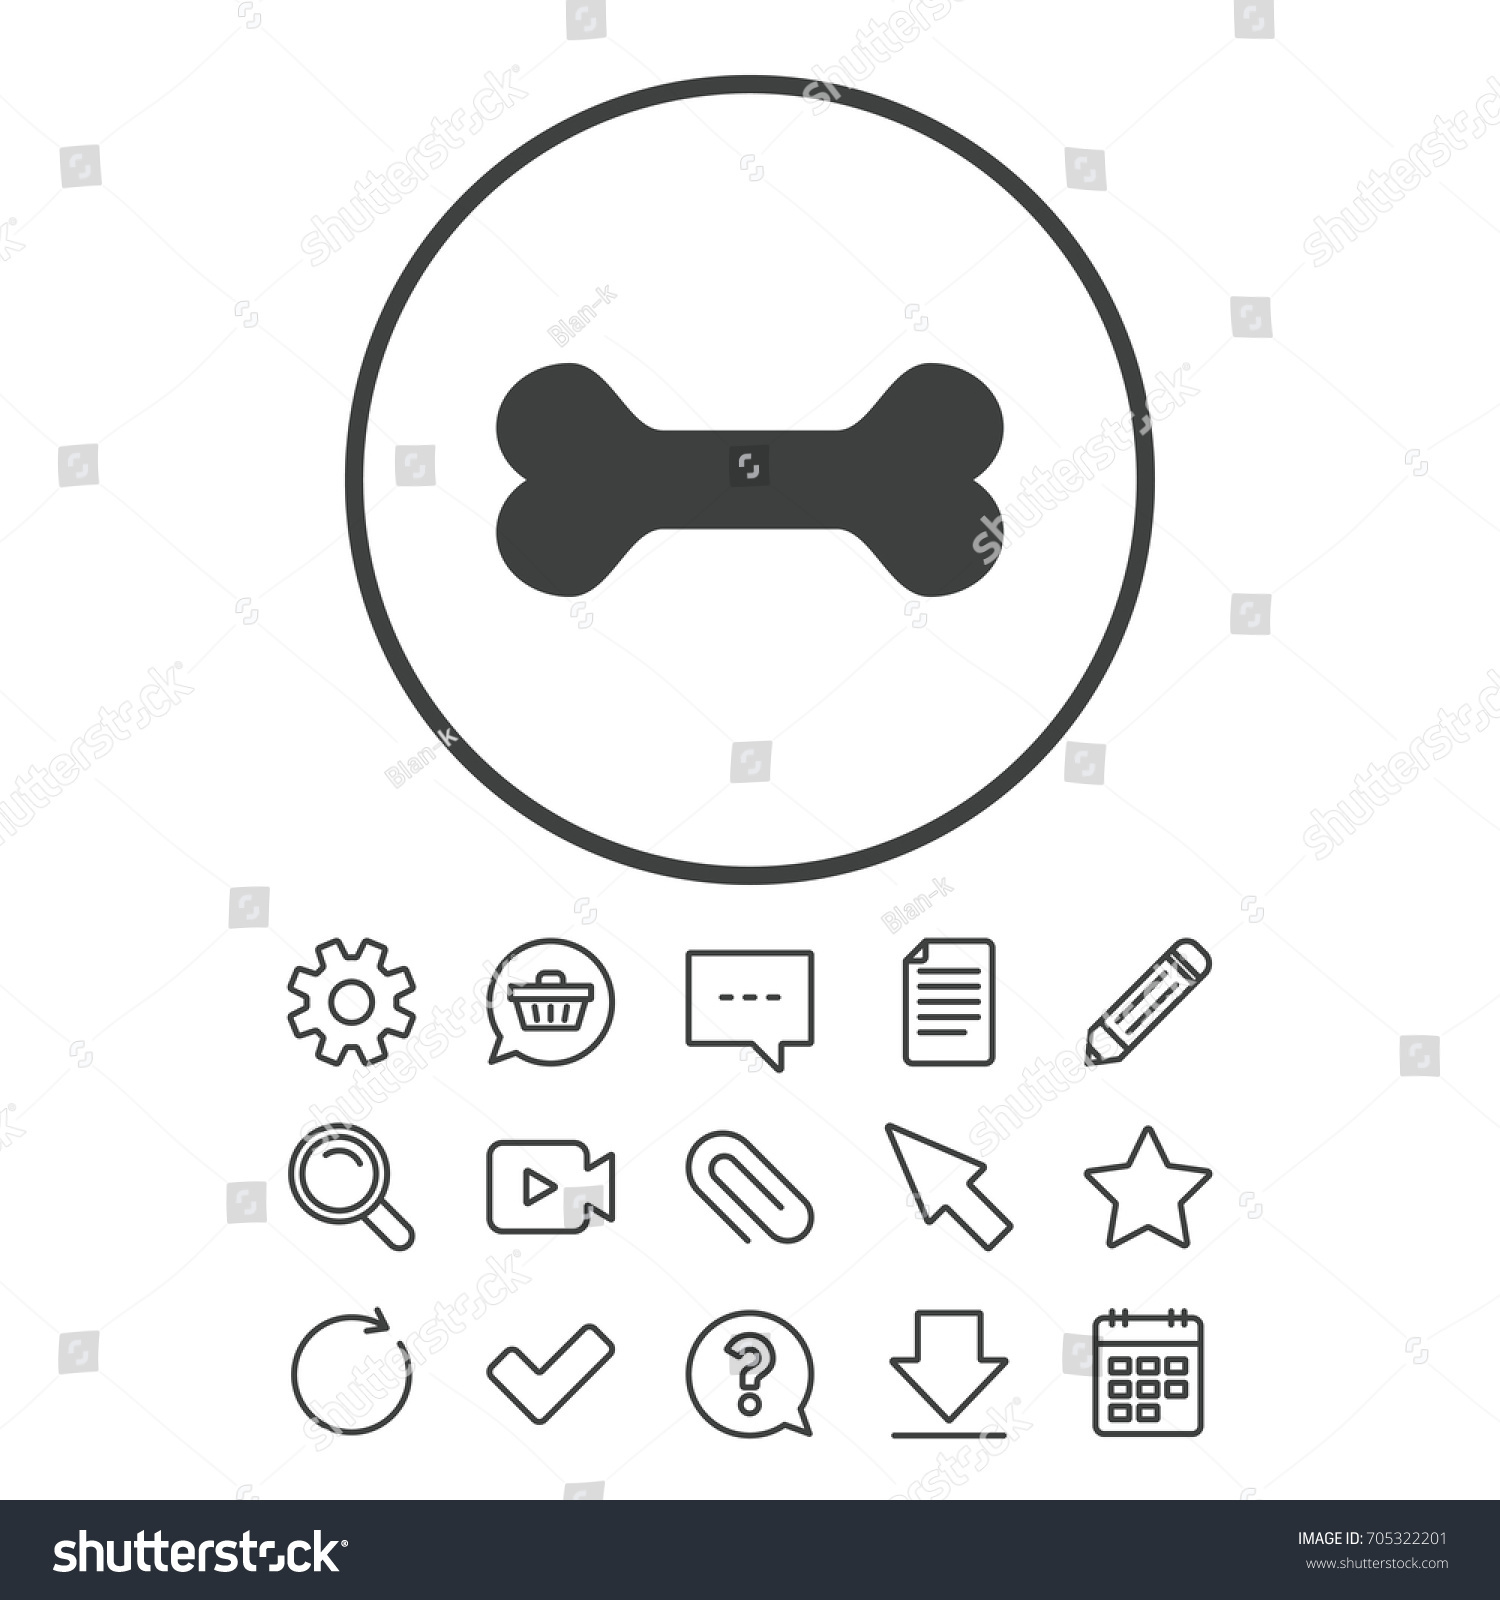 Dog bone sign icon pets food stock vector 705322201 shutterstock dog bone sign icon pets food symbol document chat and paper clip line buycottarizona Image collections